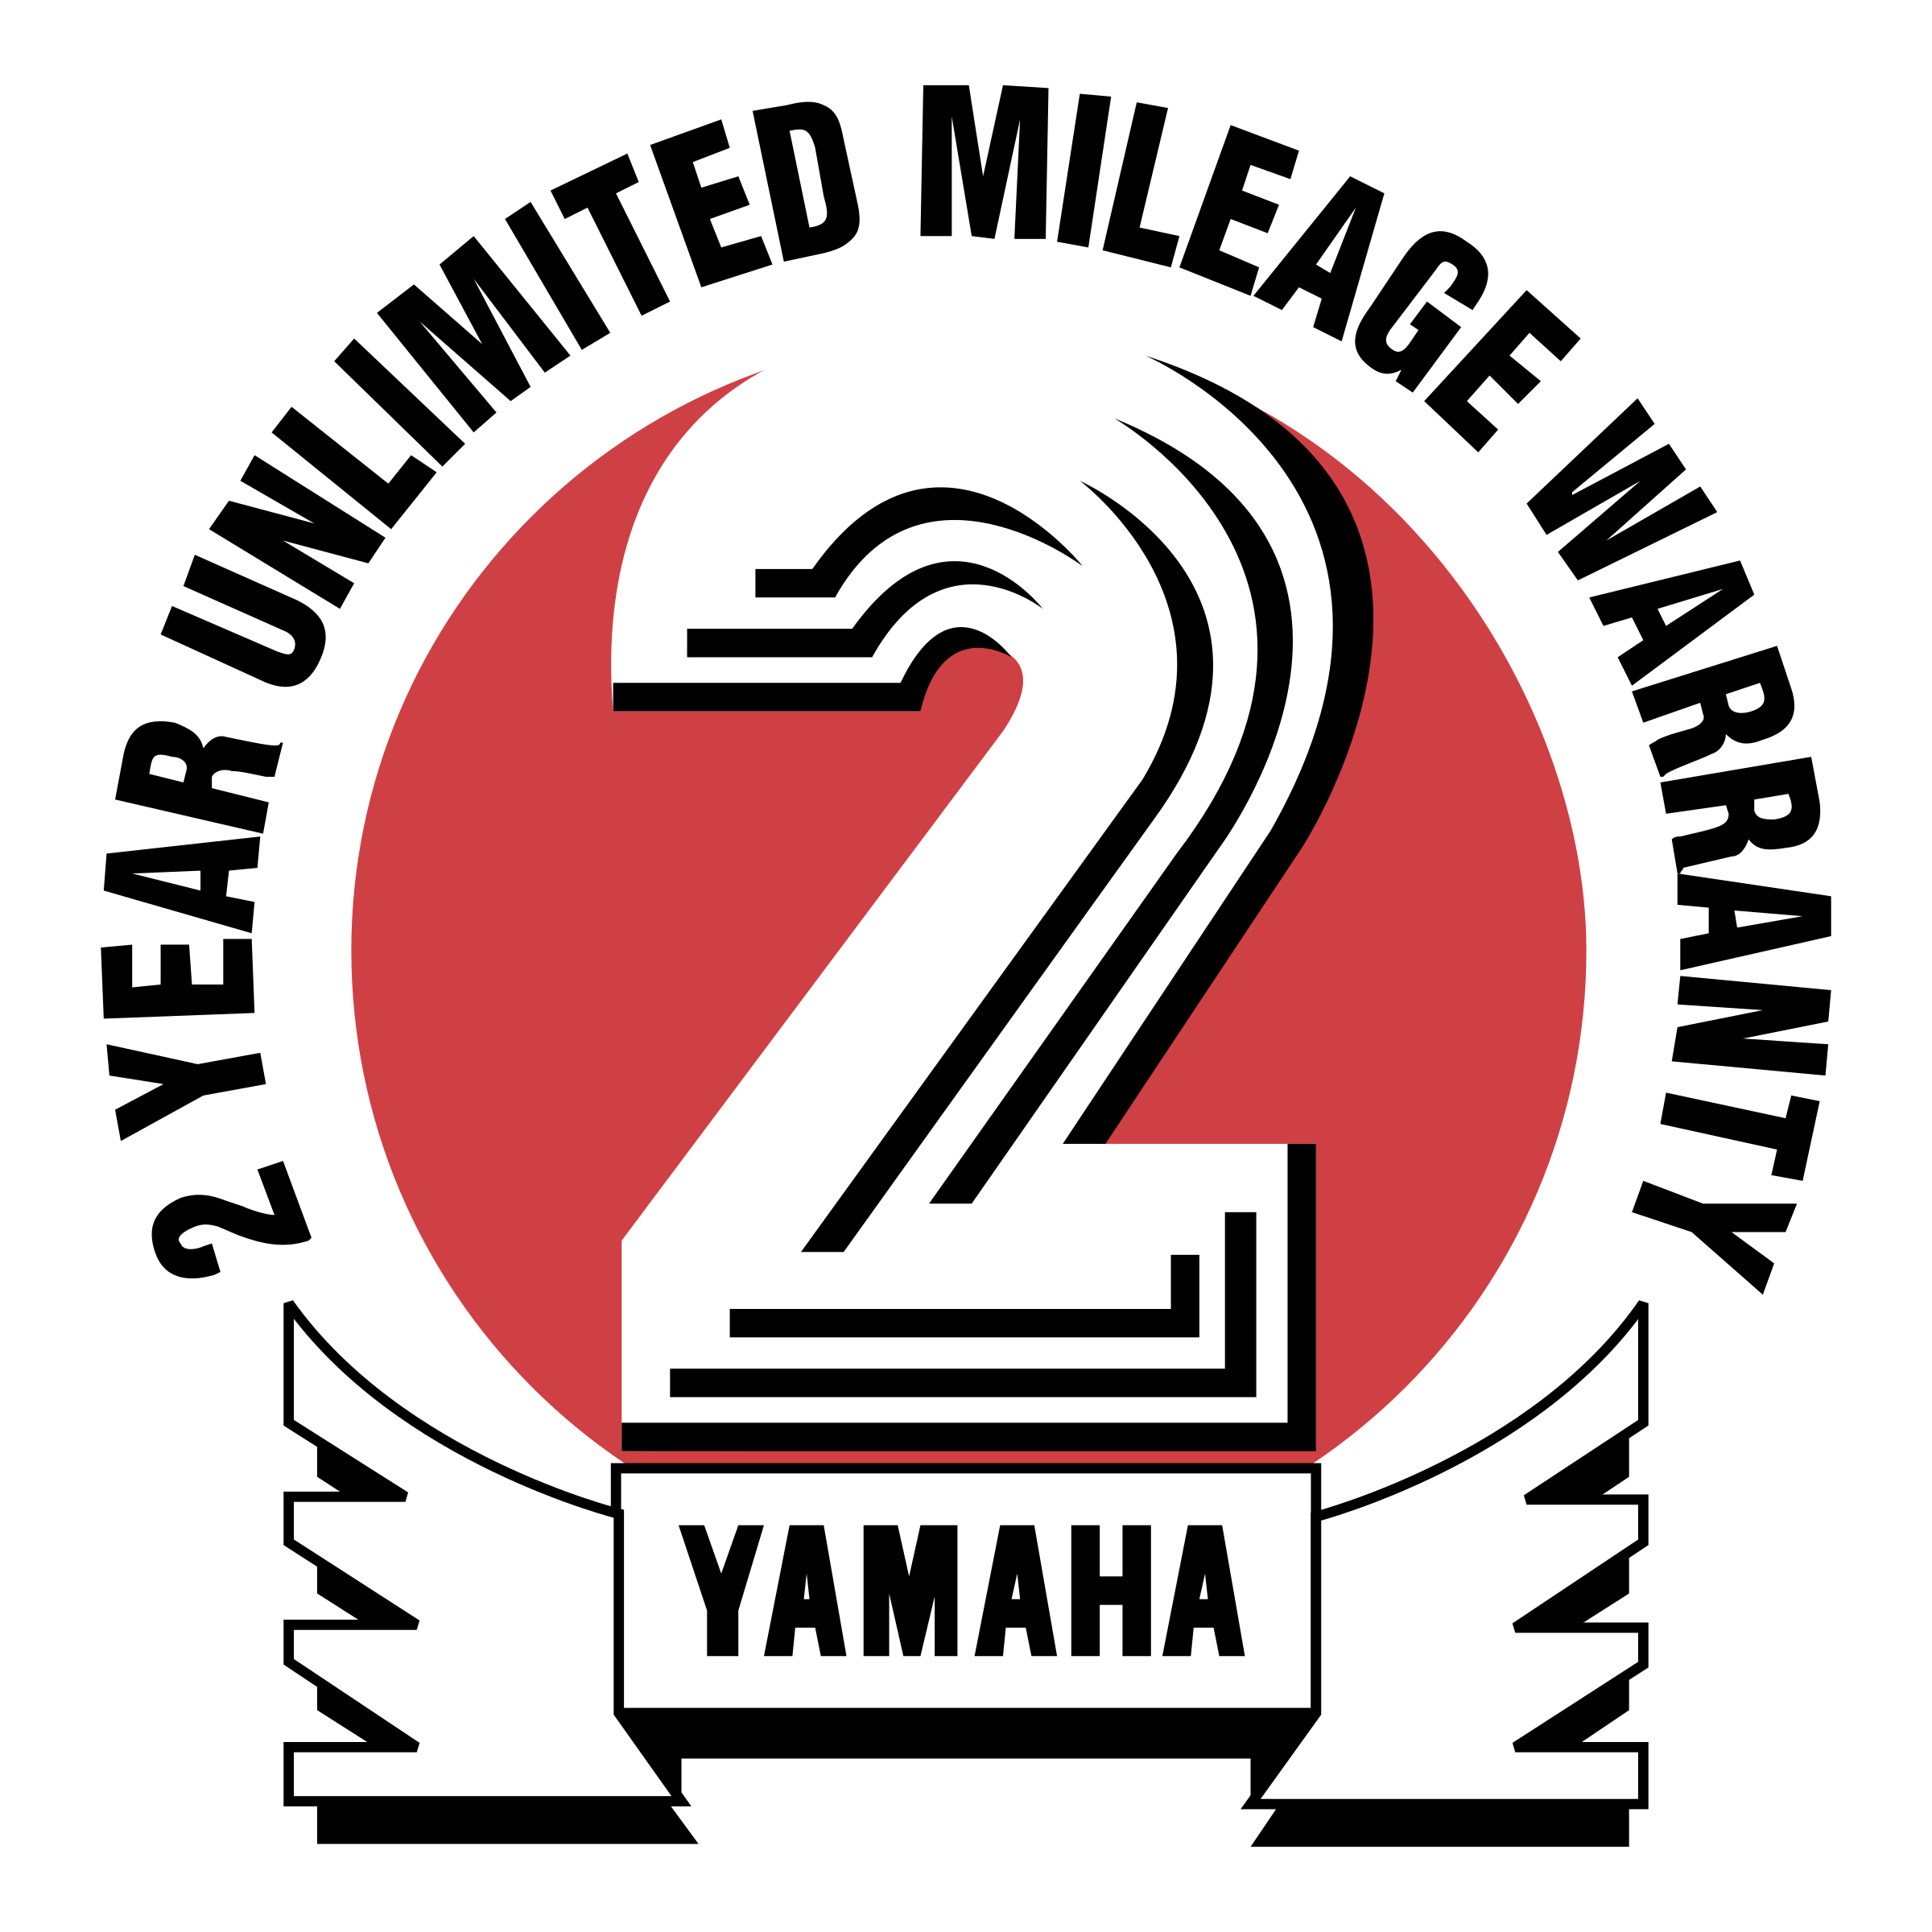 Yamaha Logo Png Transparent Svg Vector Freebie Supply